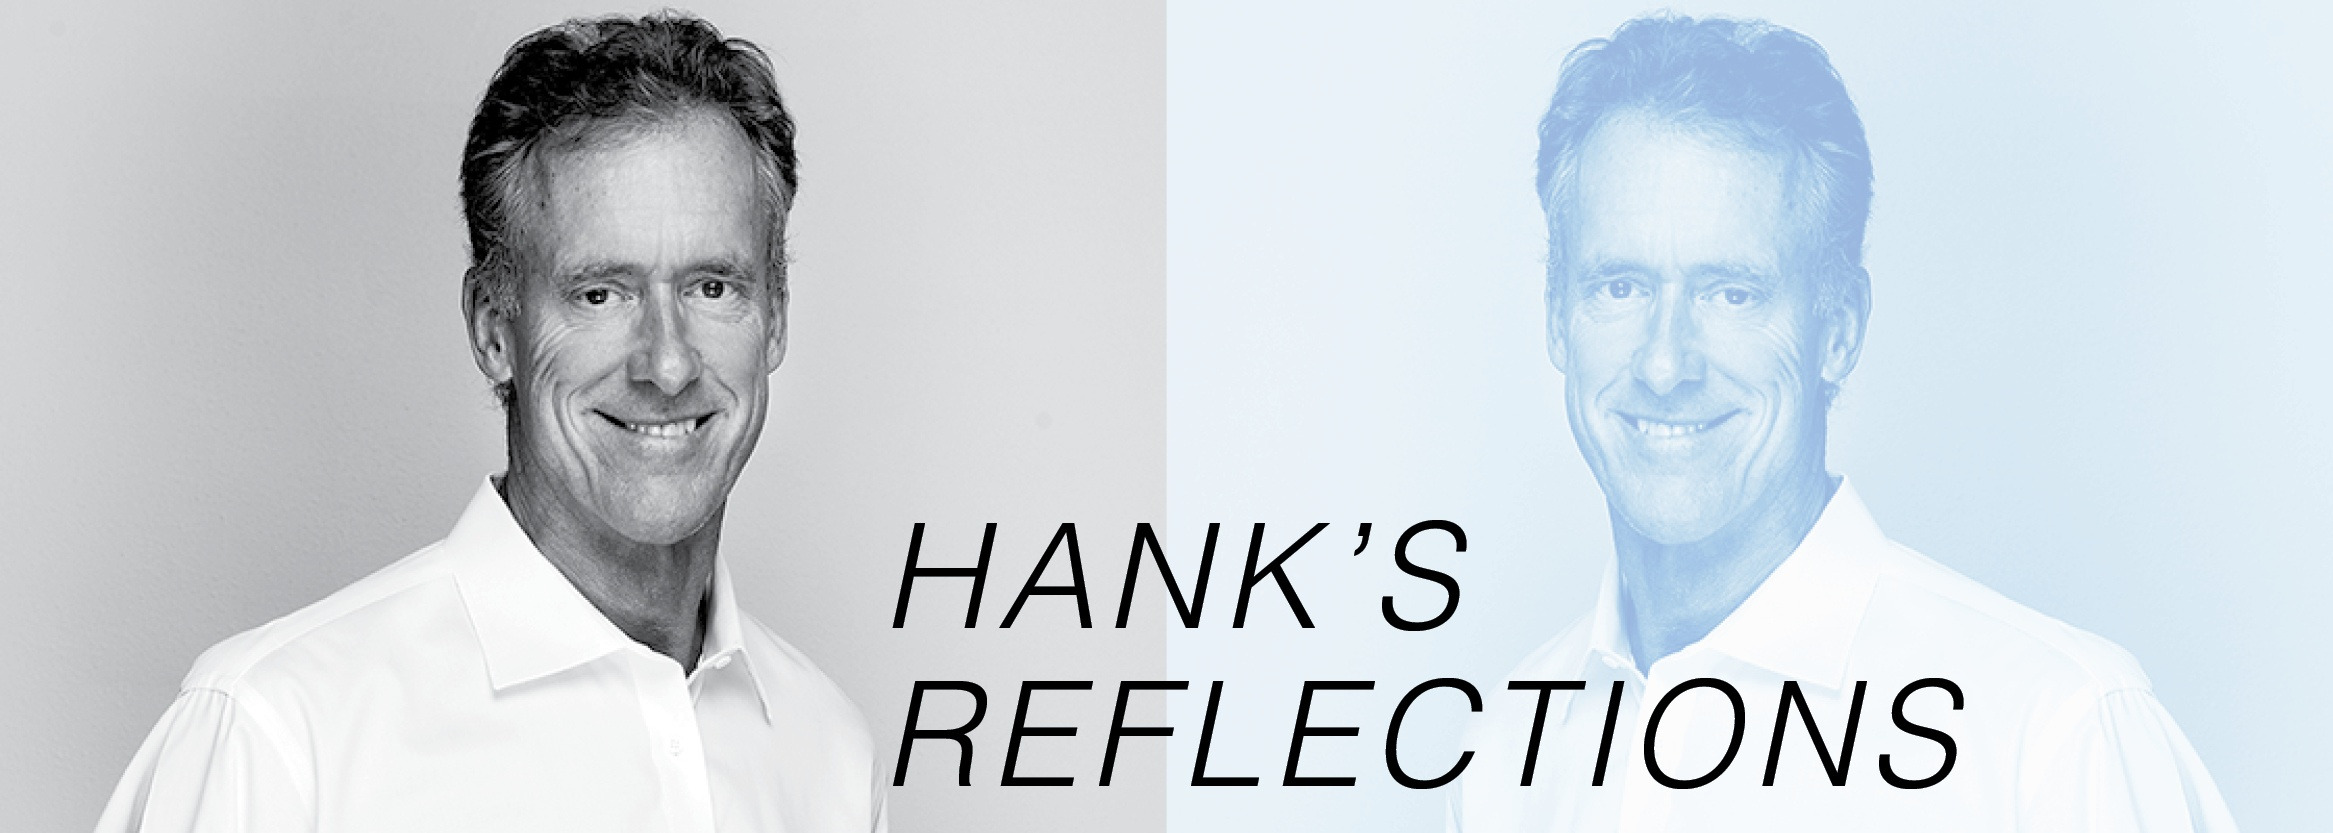 Running a successful dental practice can be challenging, get some pointers from Hank Barton in his latest Reflections on Dentistry story